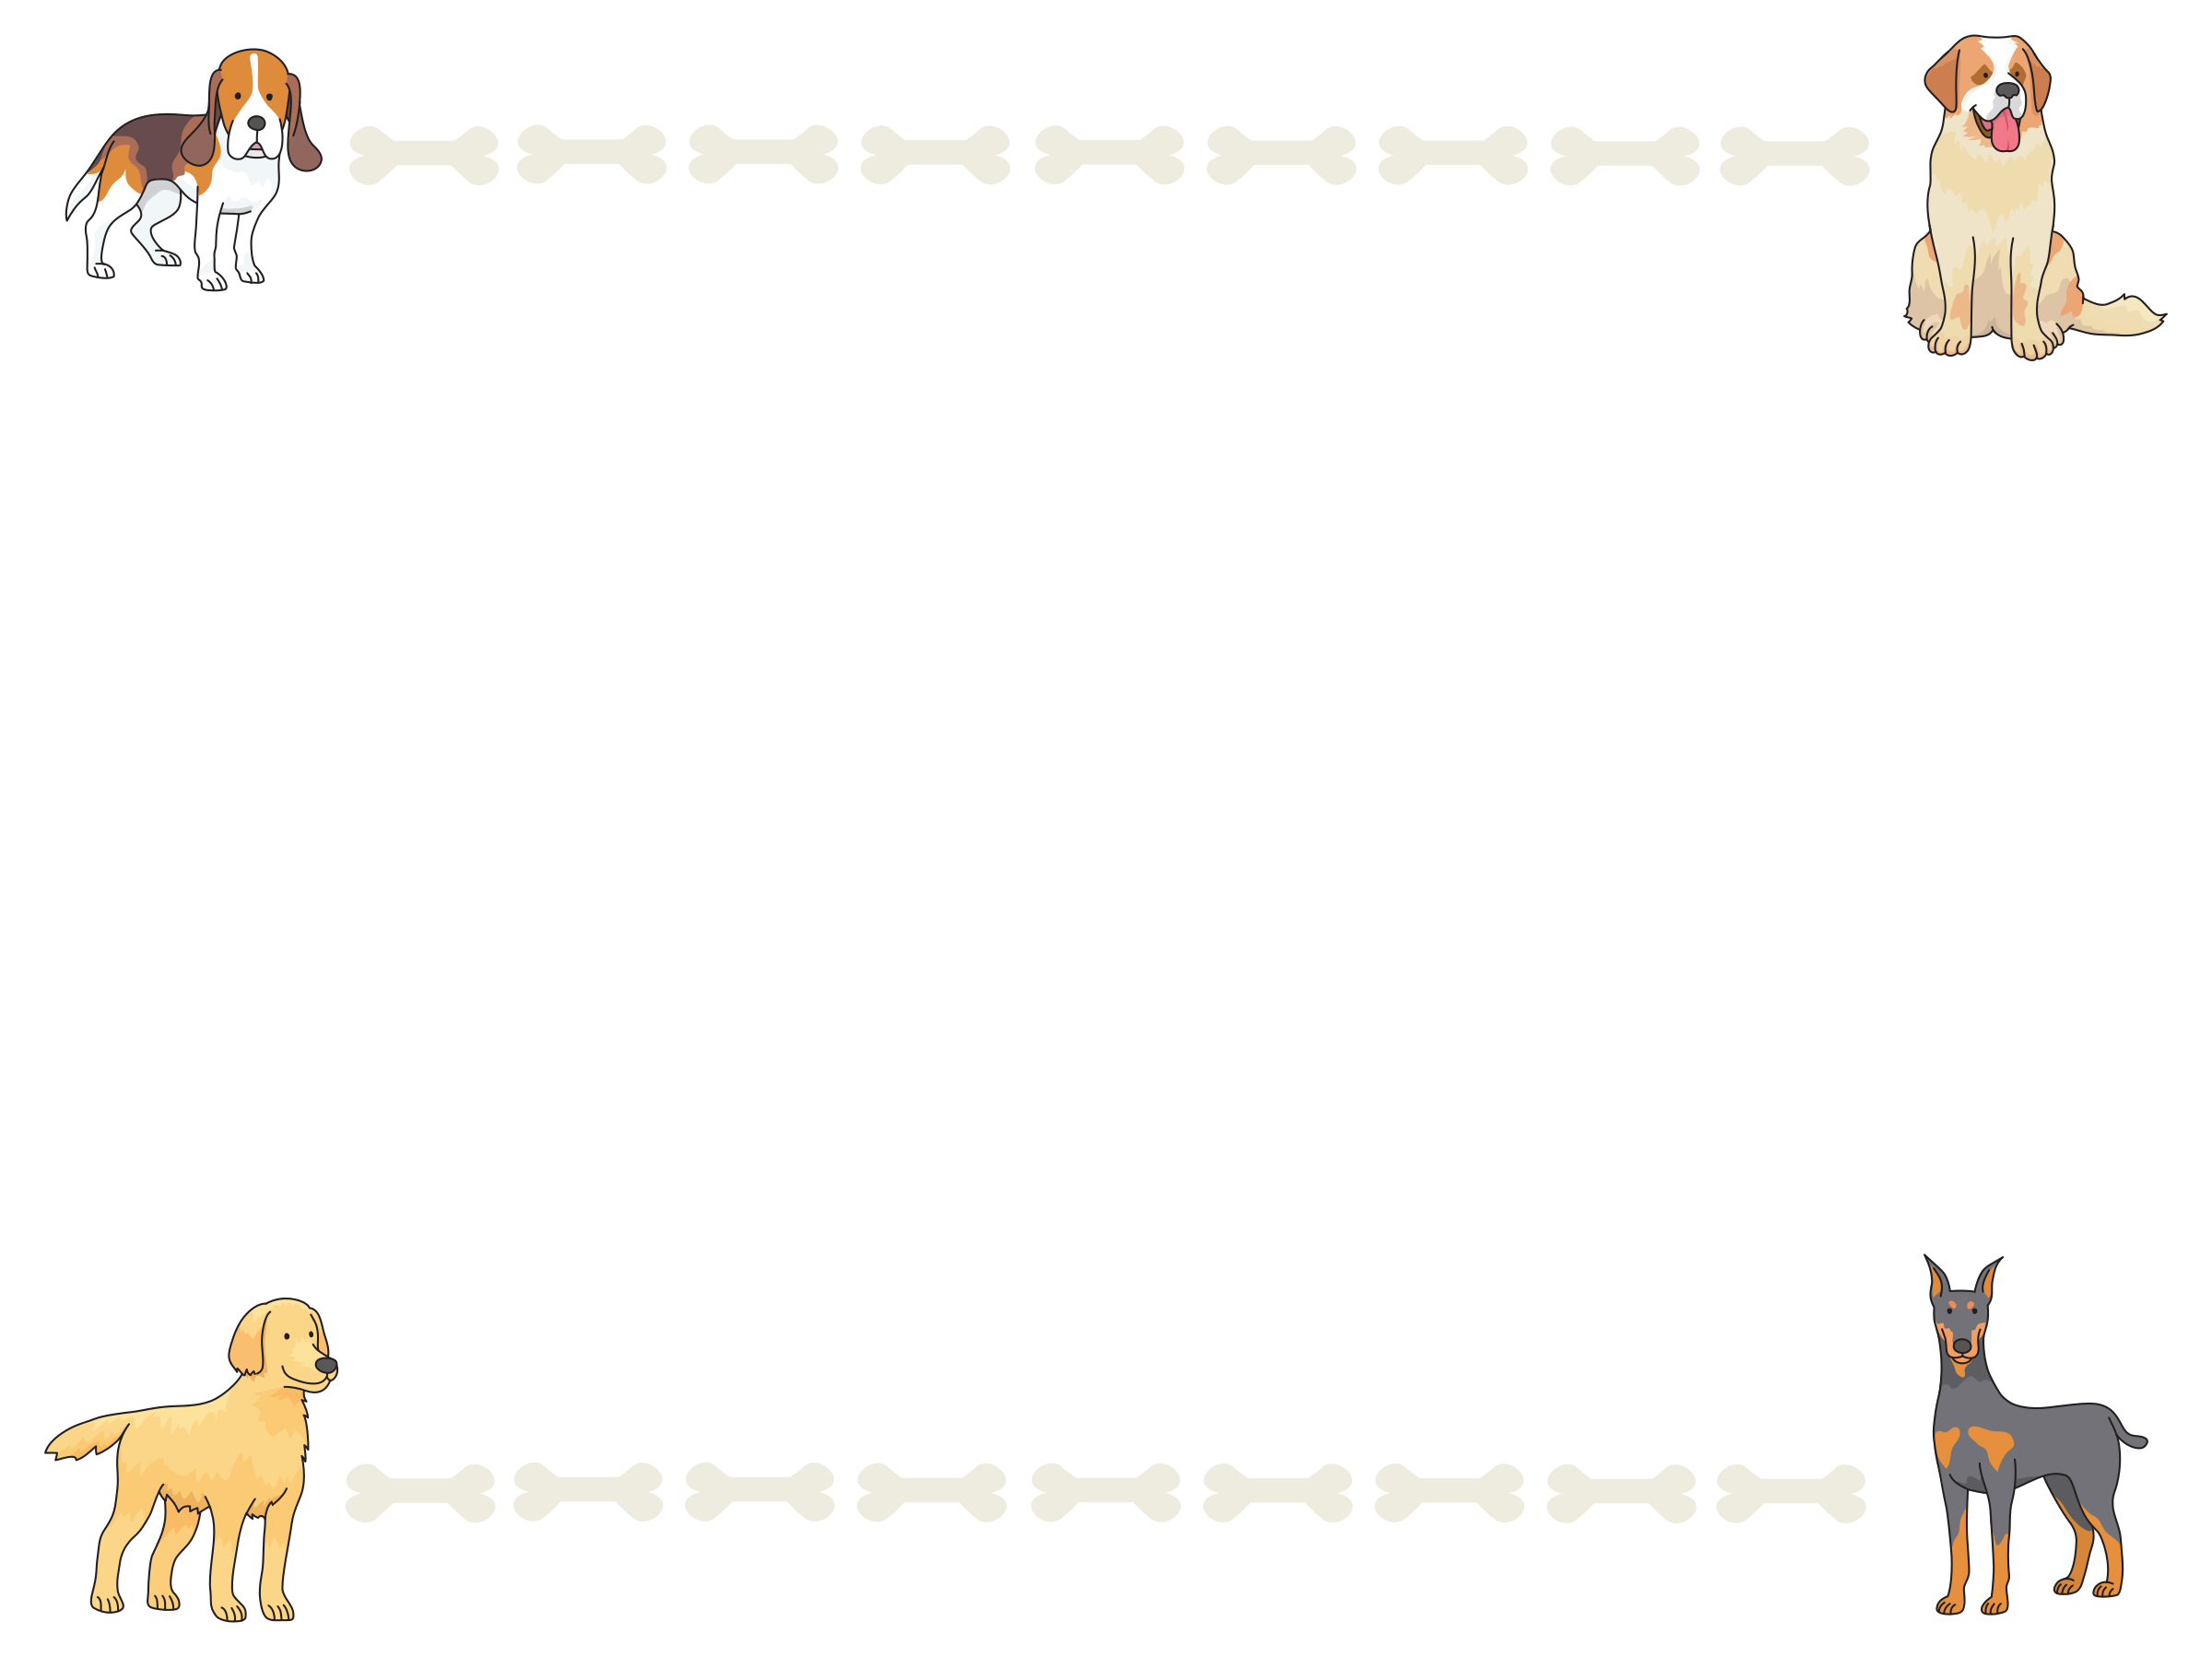 Dogs clipart picture frame. And bones big image